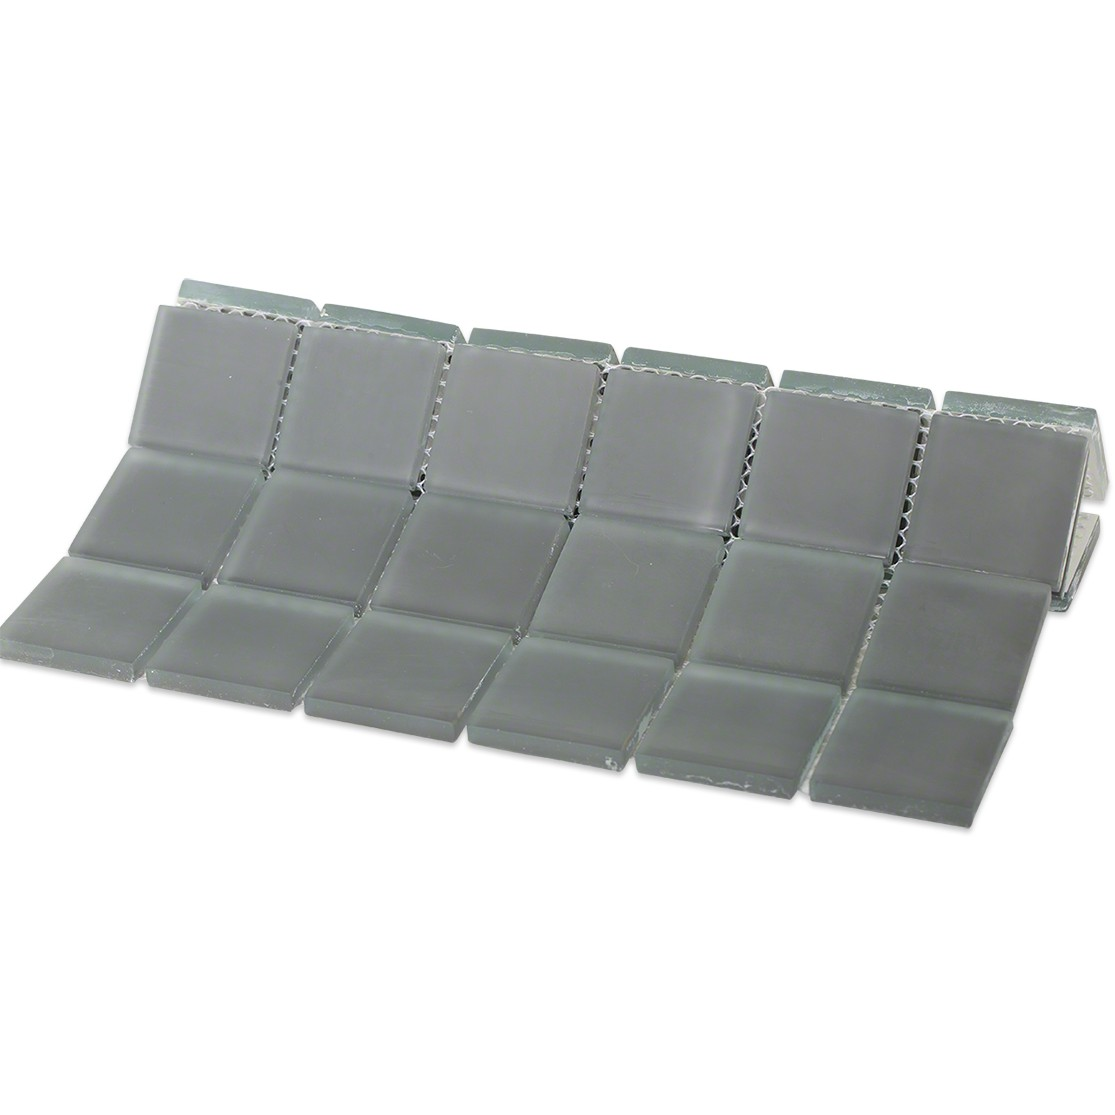 Shop For Loft Ash Gray Polished 2x2 Glass Tile At Tilebar Com